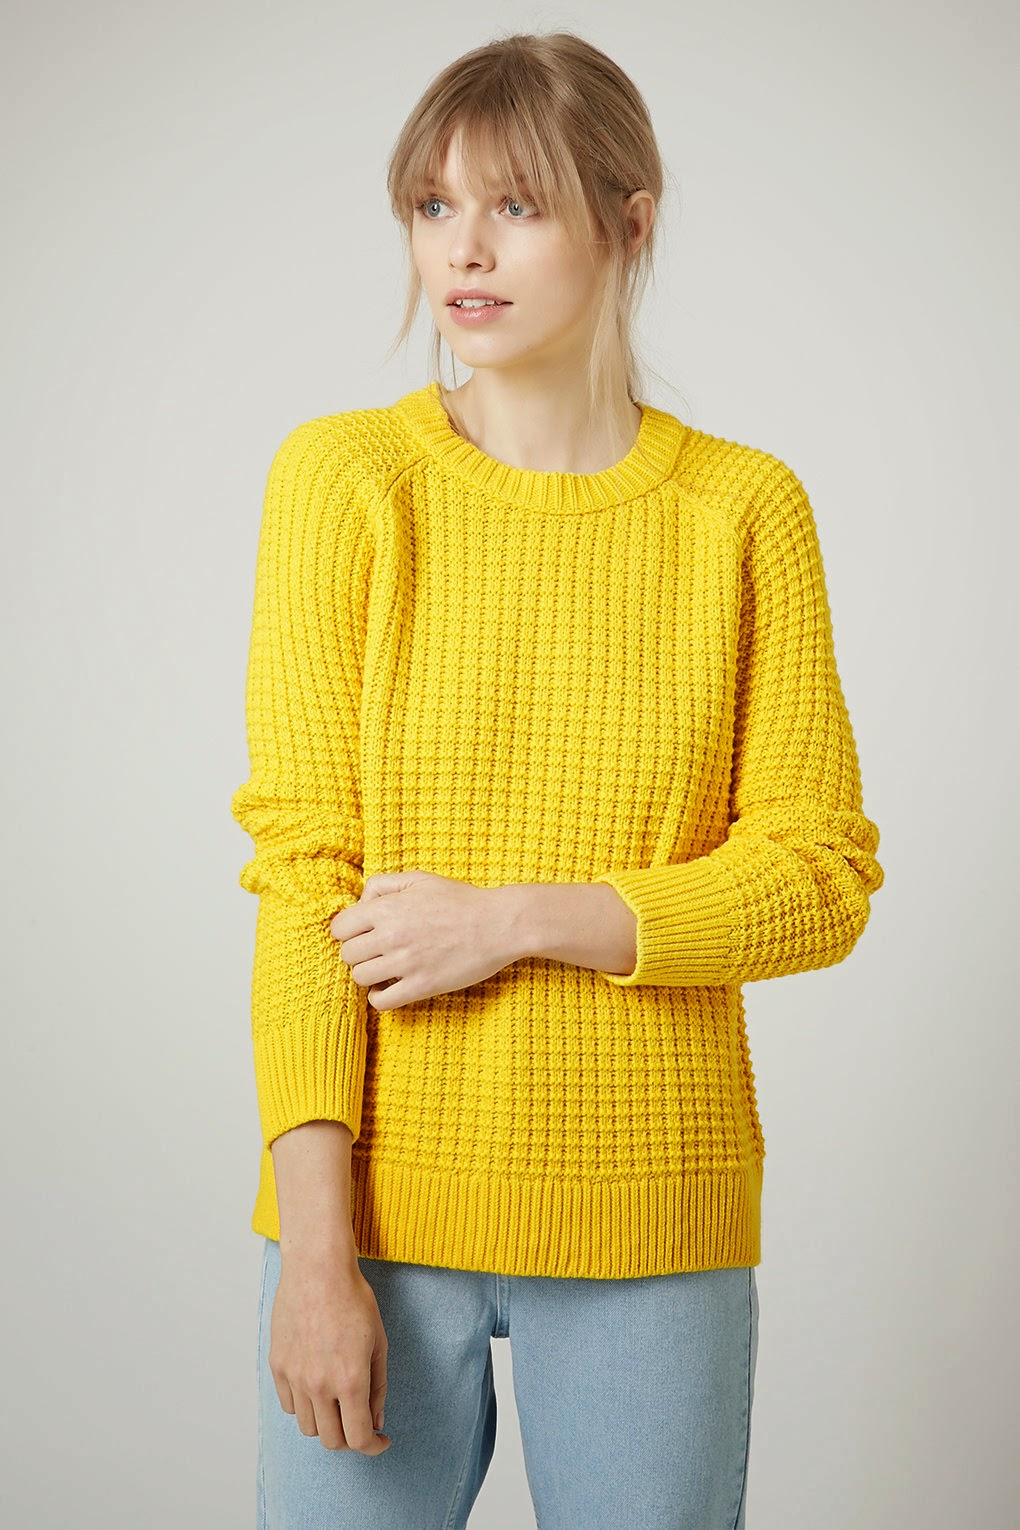 yellow topshop jumper